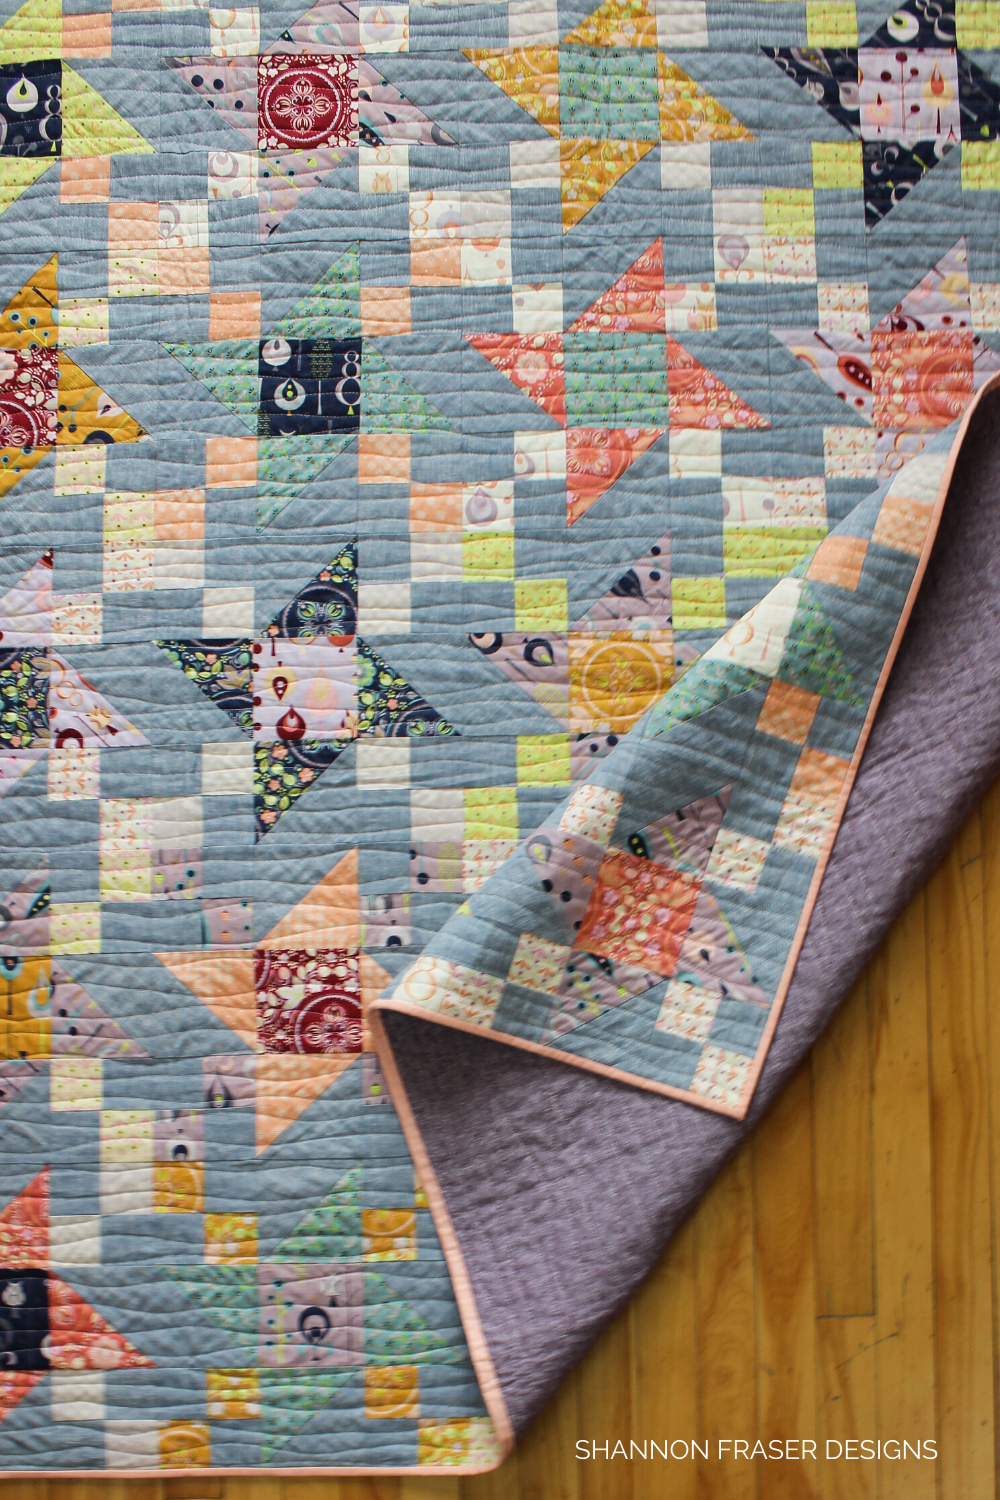 Quilting detail on the Autumn Irish Vortex quilt featuring a Leutenegger Fat Quarter Bundle + Brussels Washer Line Dyed Linen | Irish Vortex quilt pattern | Shannon Fraser Designs #quilts